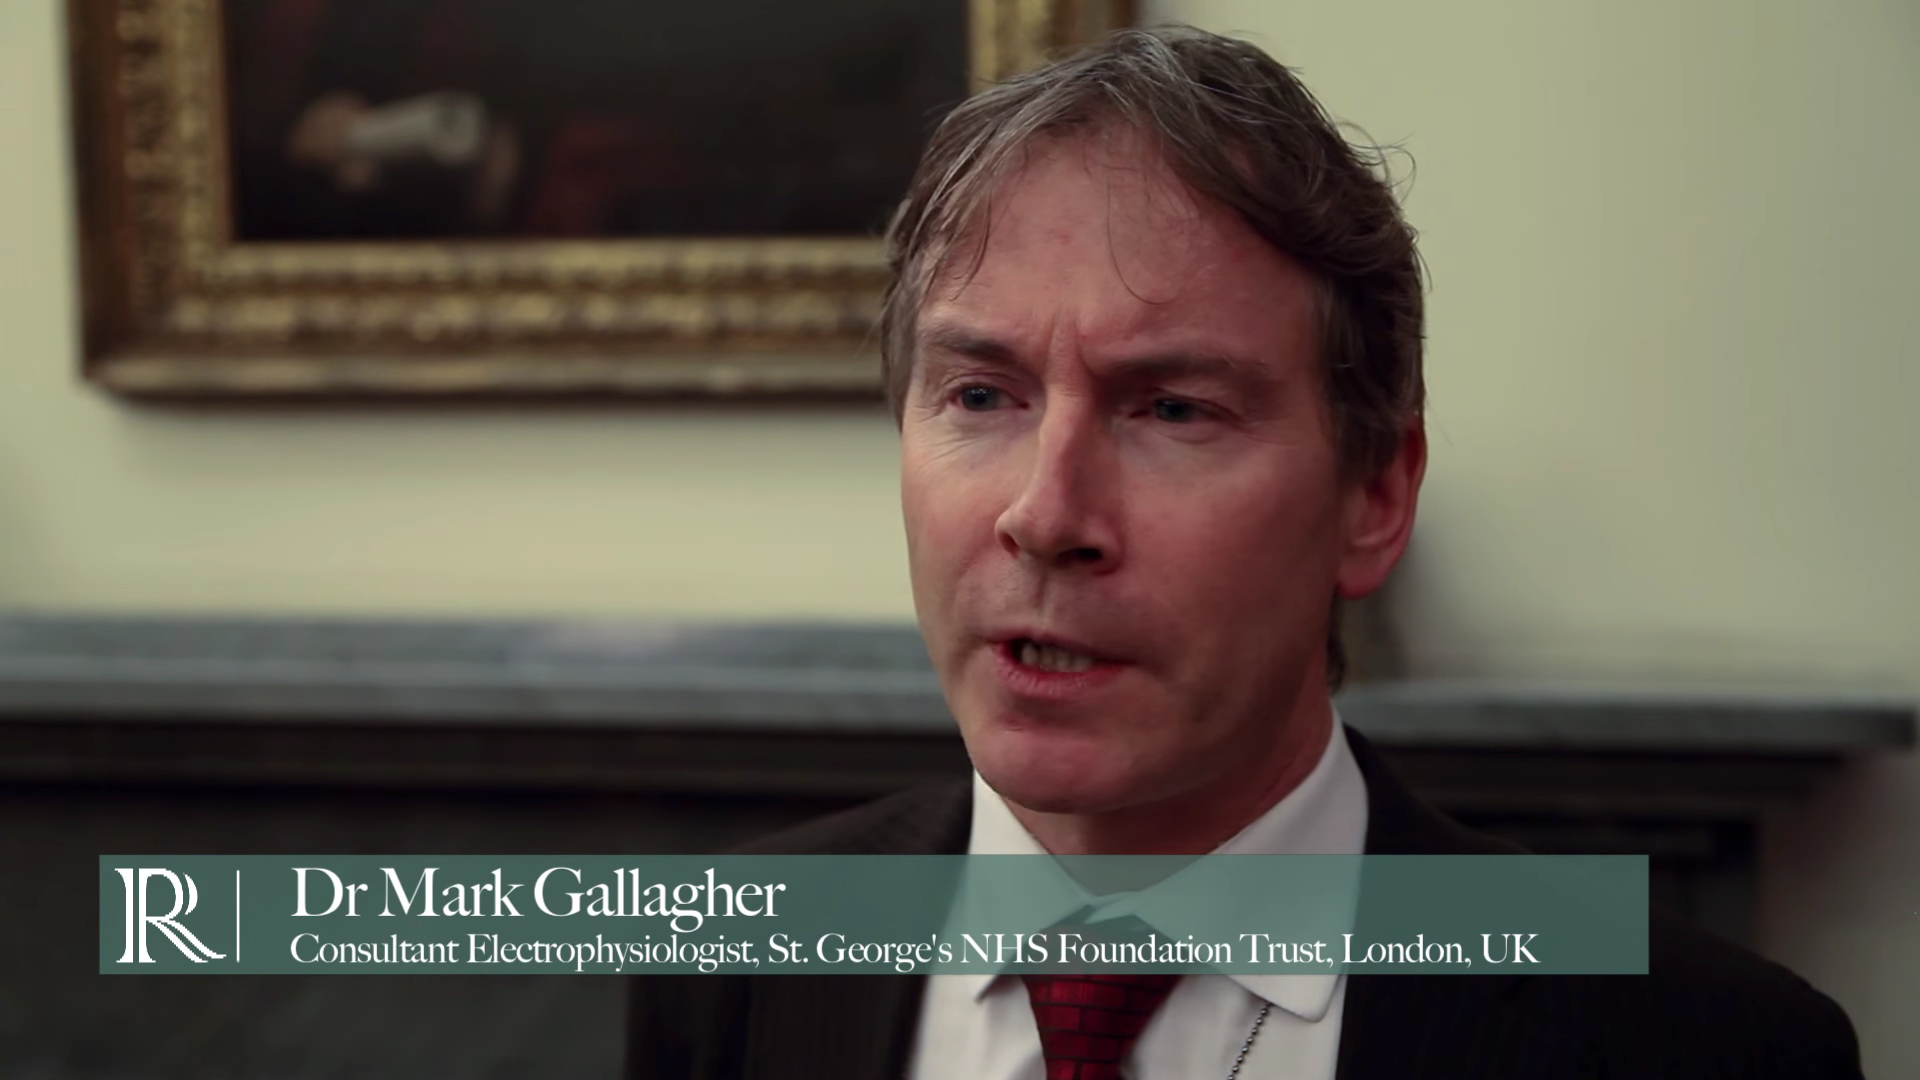 Treatment Of Atrial Fibrillation - Dr Mark Gallagher